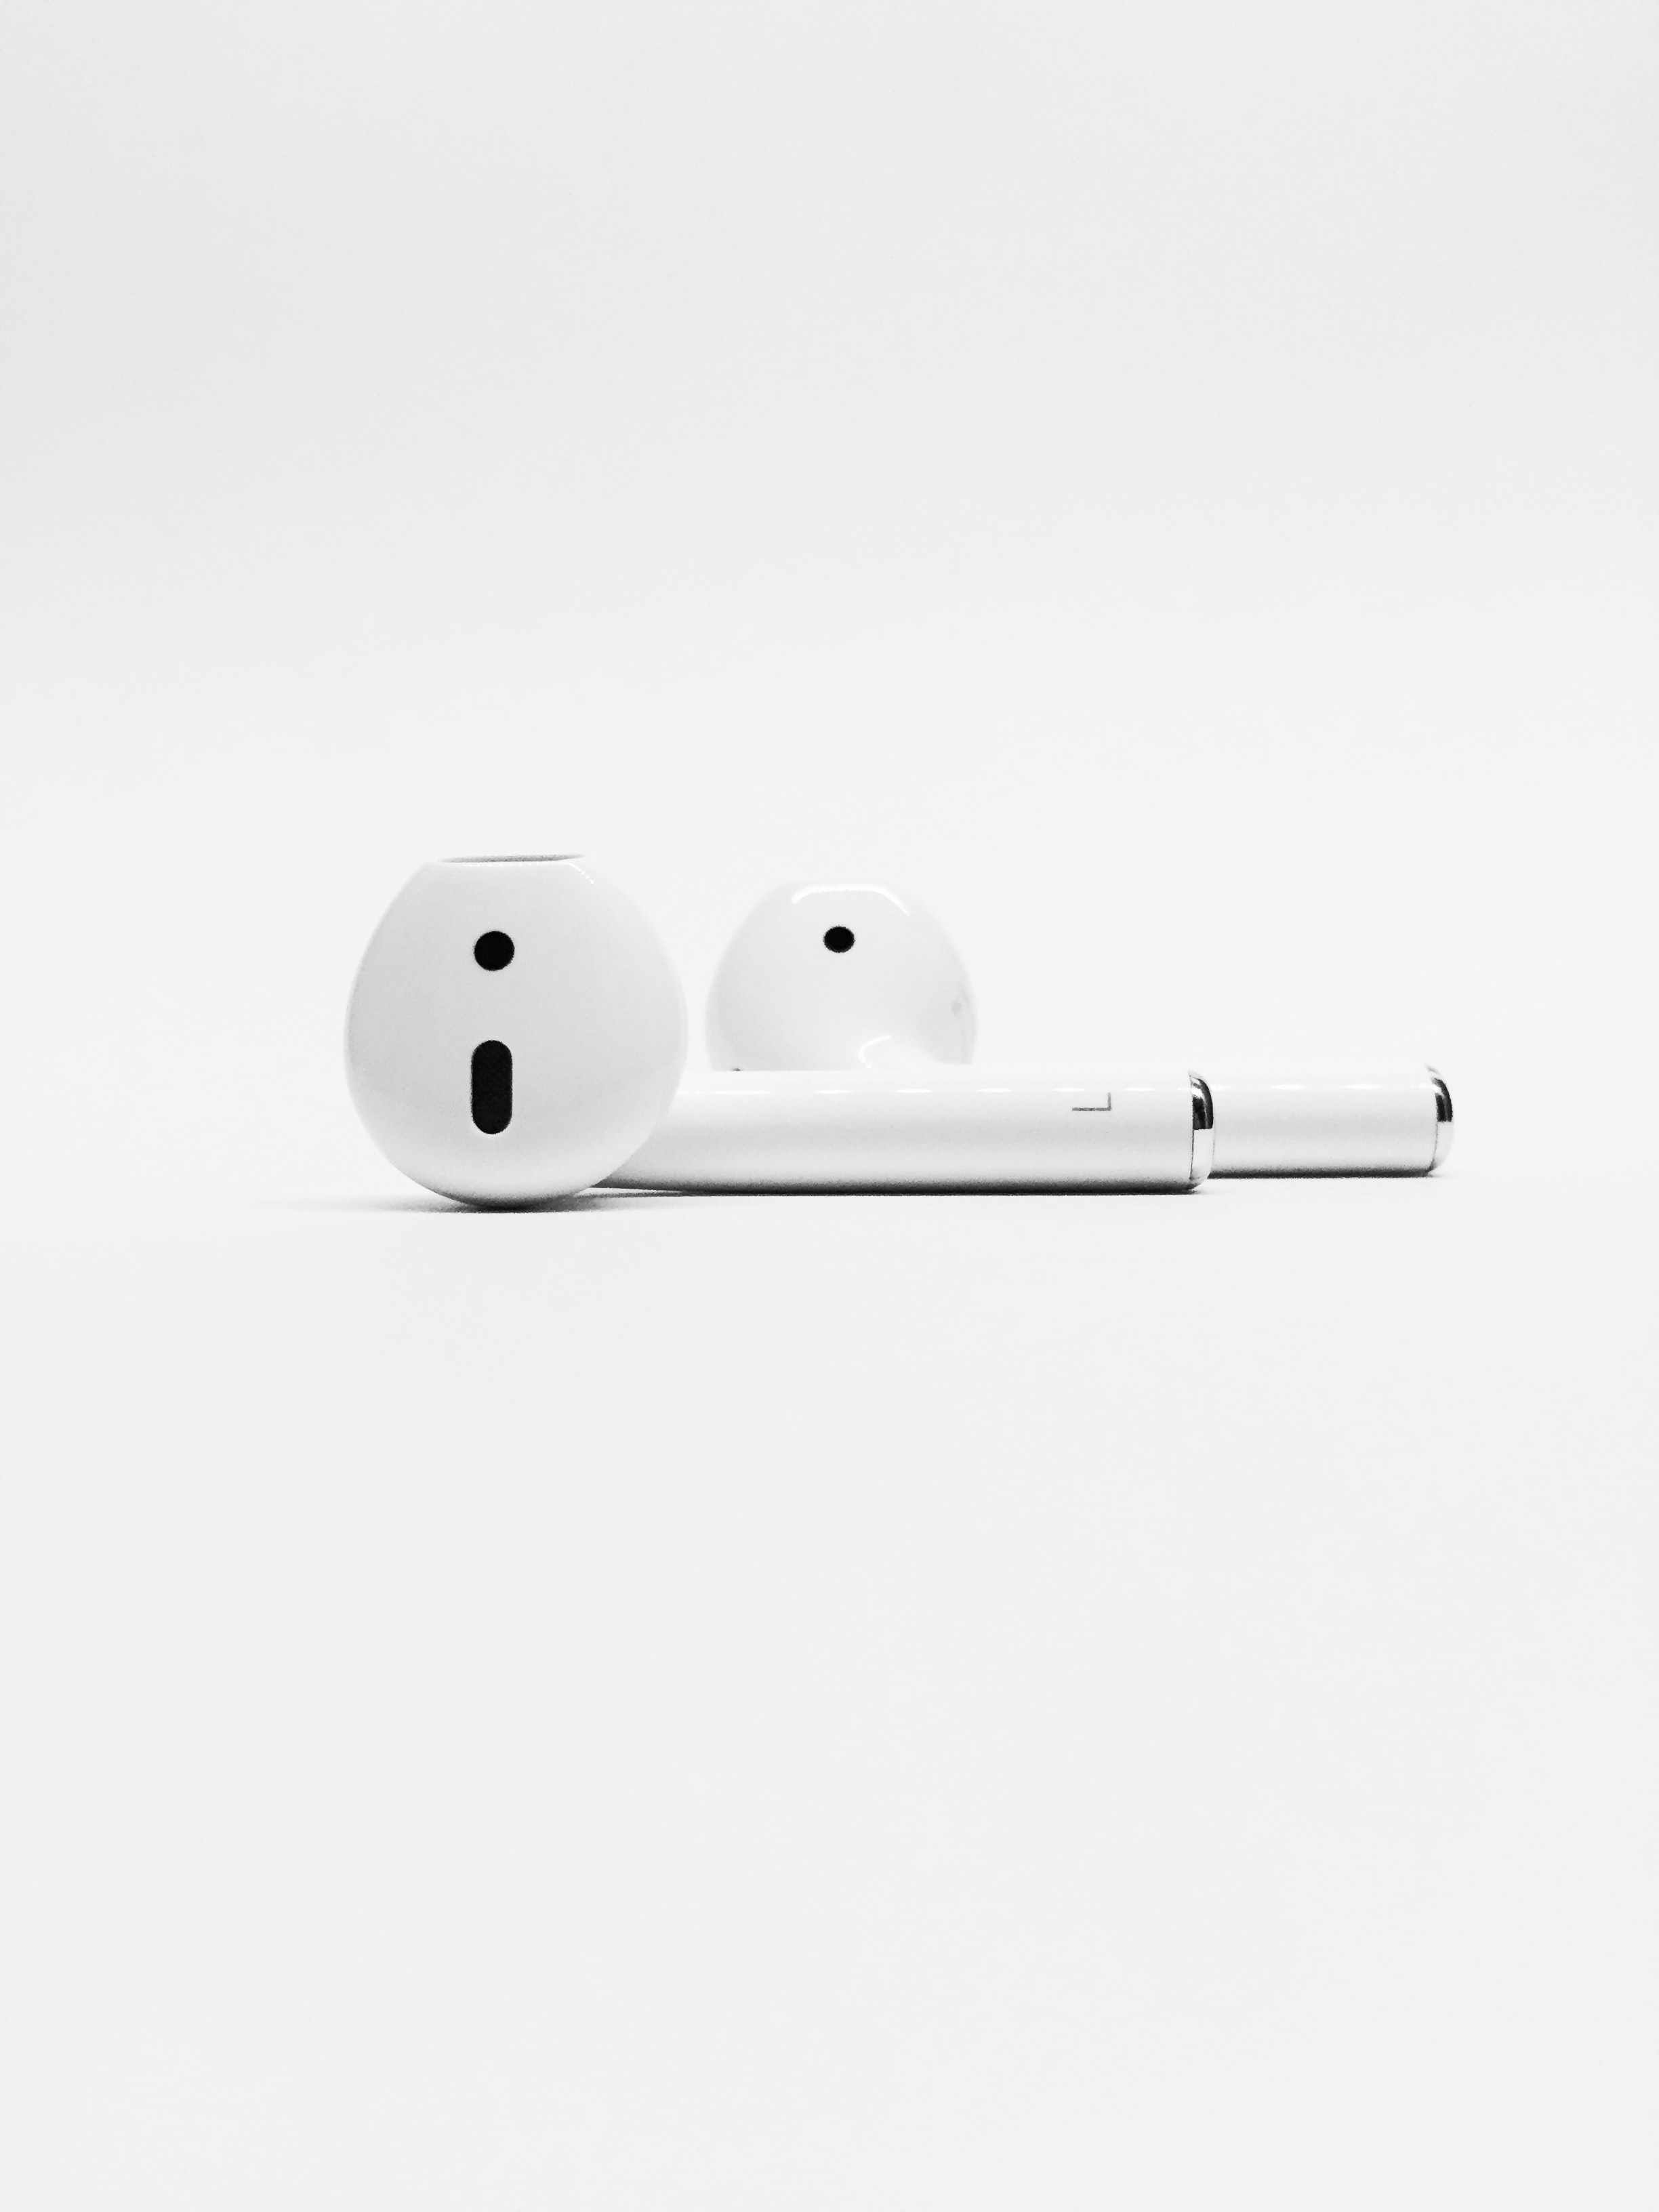 A close-up view of white wireless earphones.